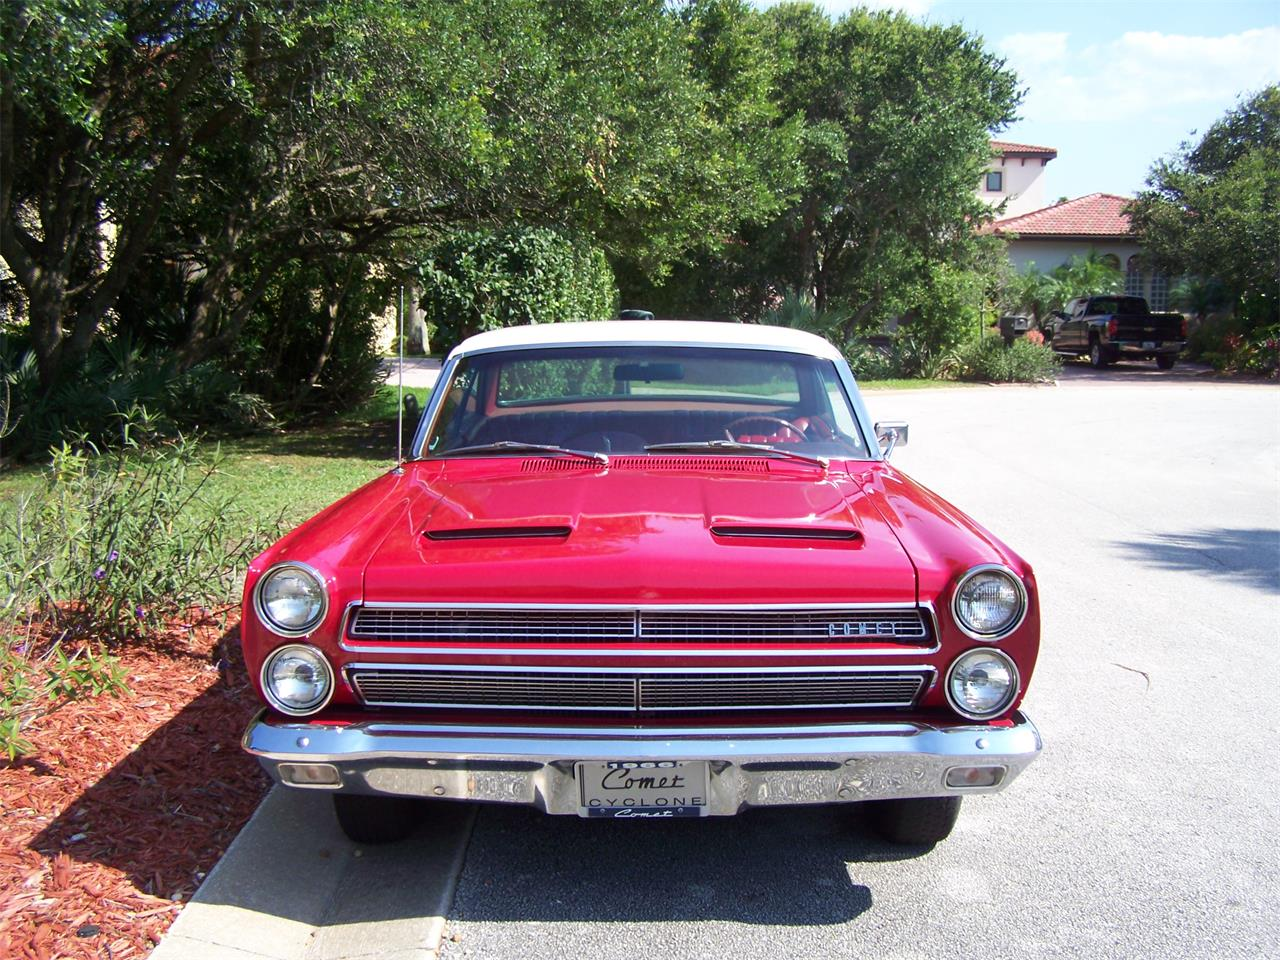 Large Picture of Classic 1966 Cyclone GT located in PONCE INLET Florida - $29,900.00 Offered by a Private Seller - IEV2